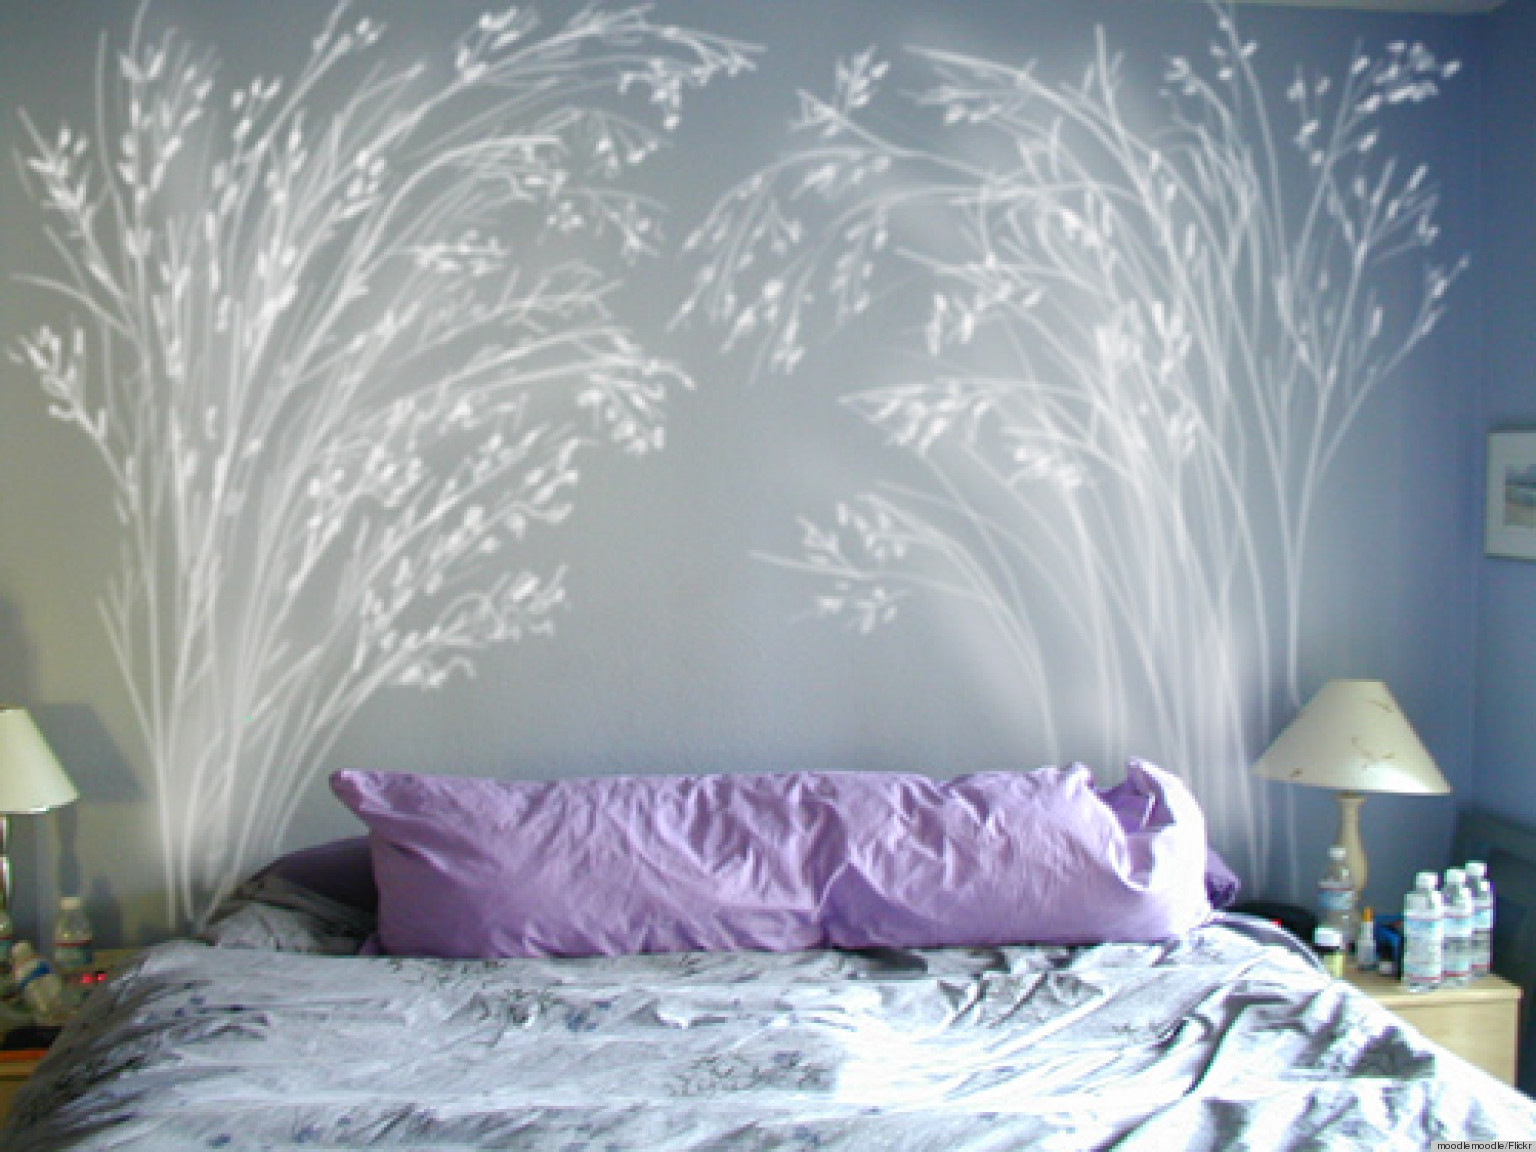 5 DIY Headboard Ideas That Arenu0027t Technically Supposed To Be Headboards  (PHOTOS) | HuffPost